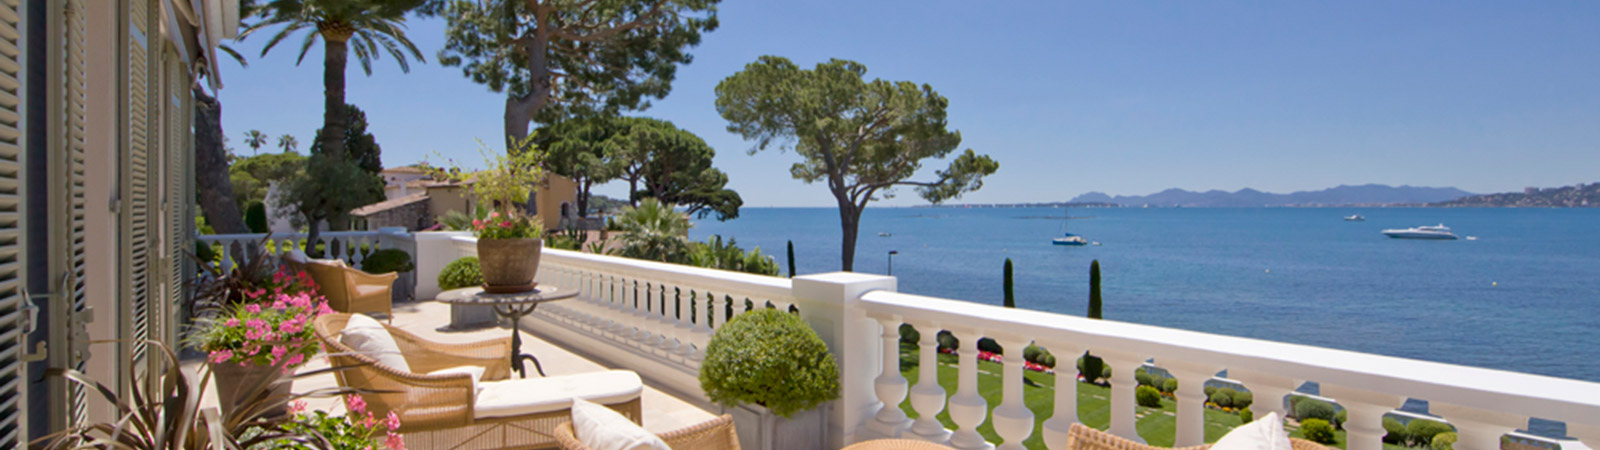 Villas For Sale In The South Of France